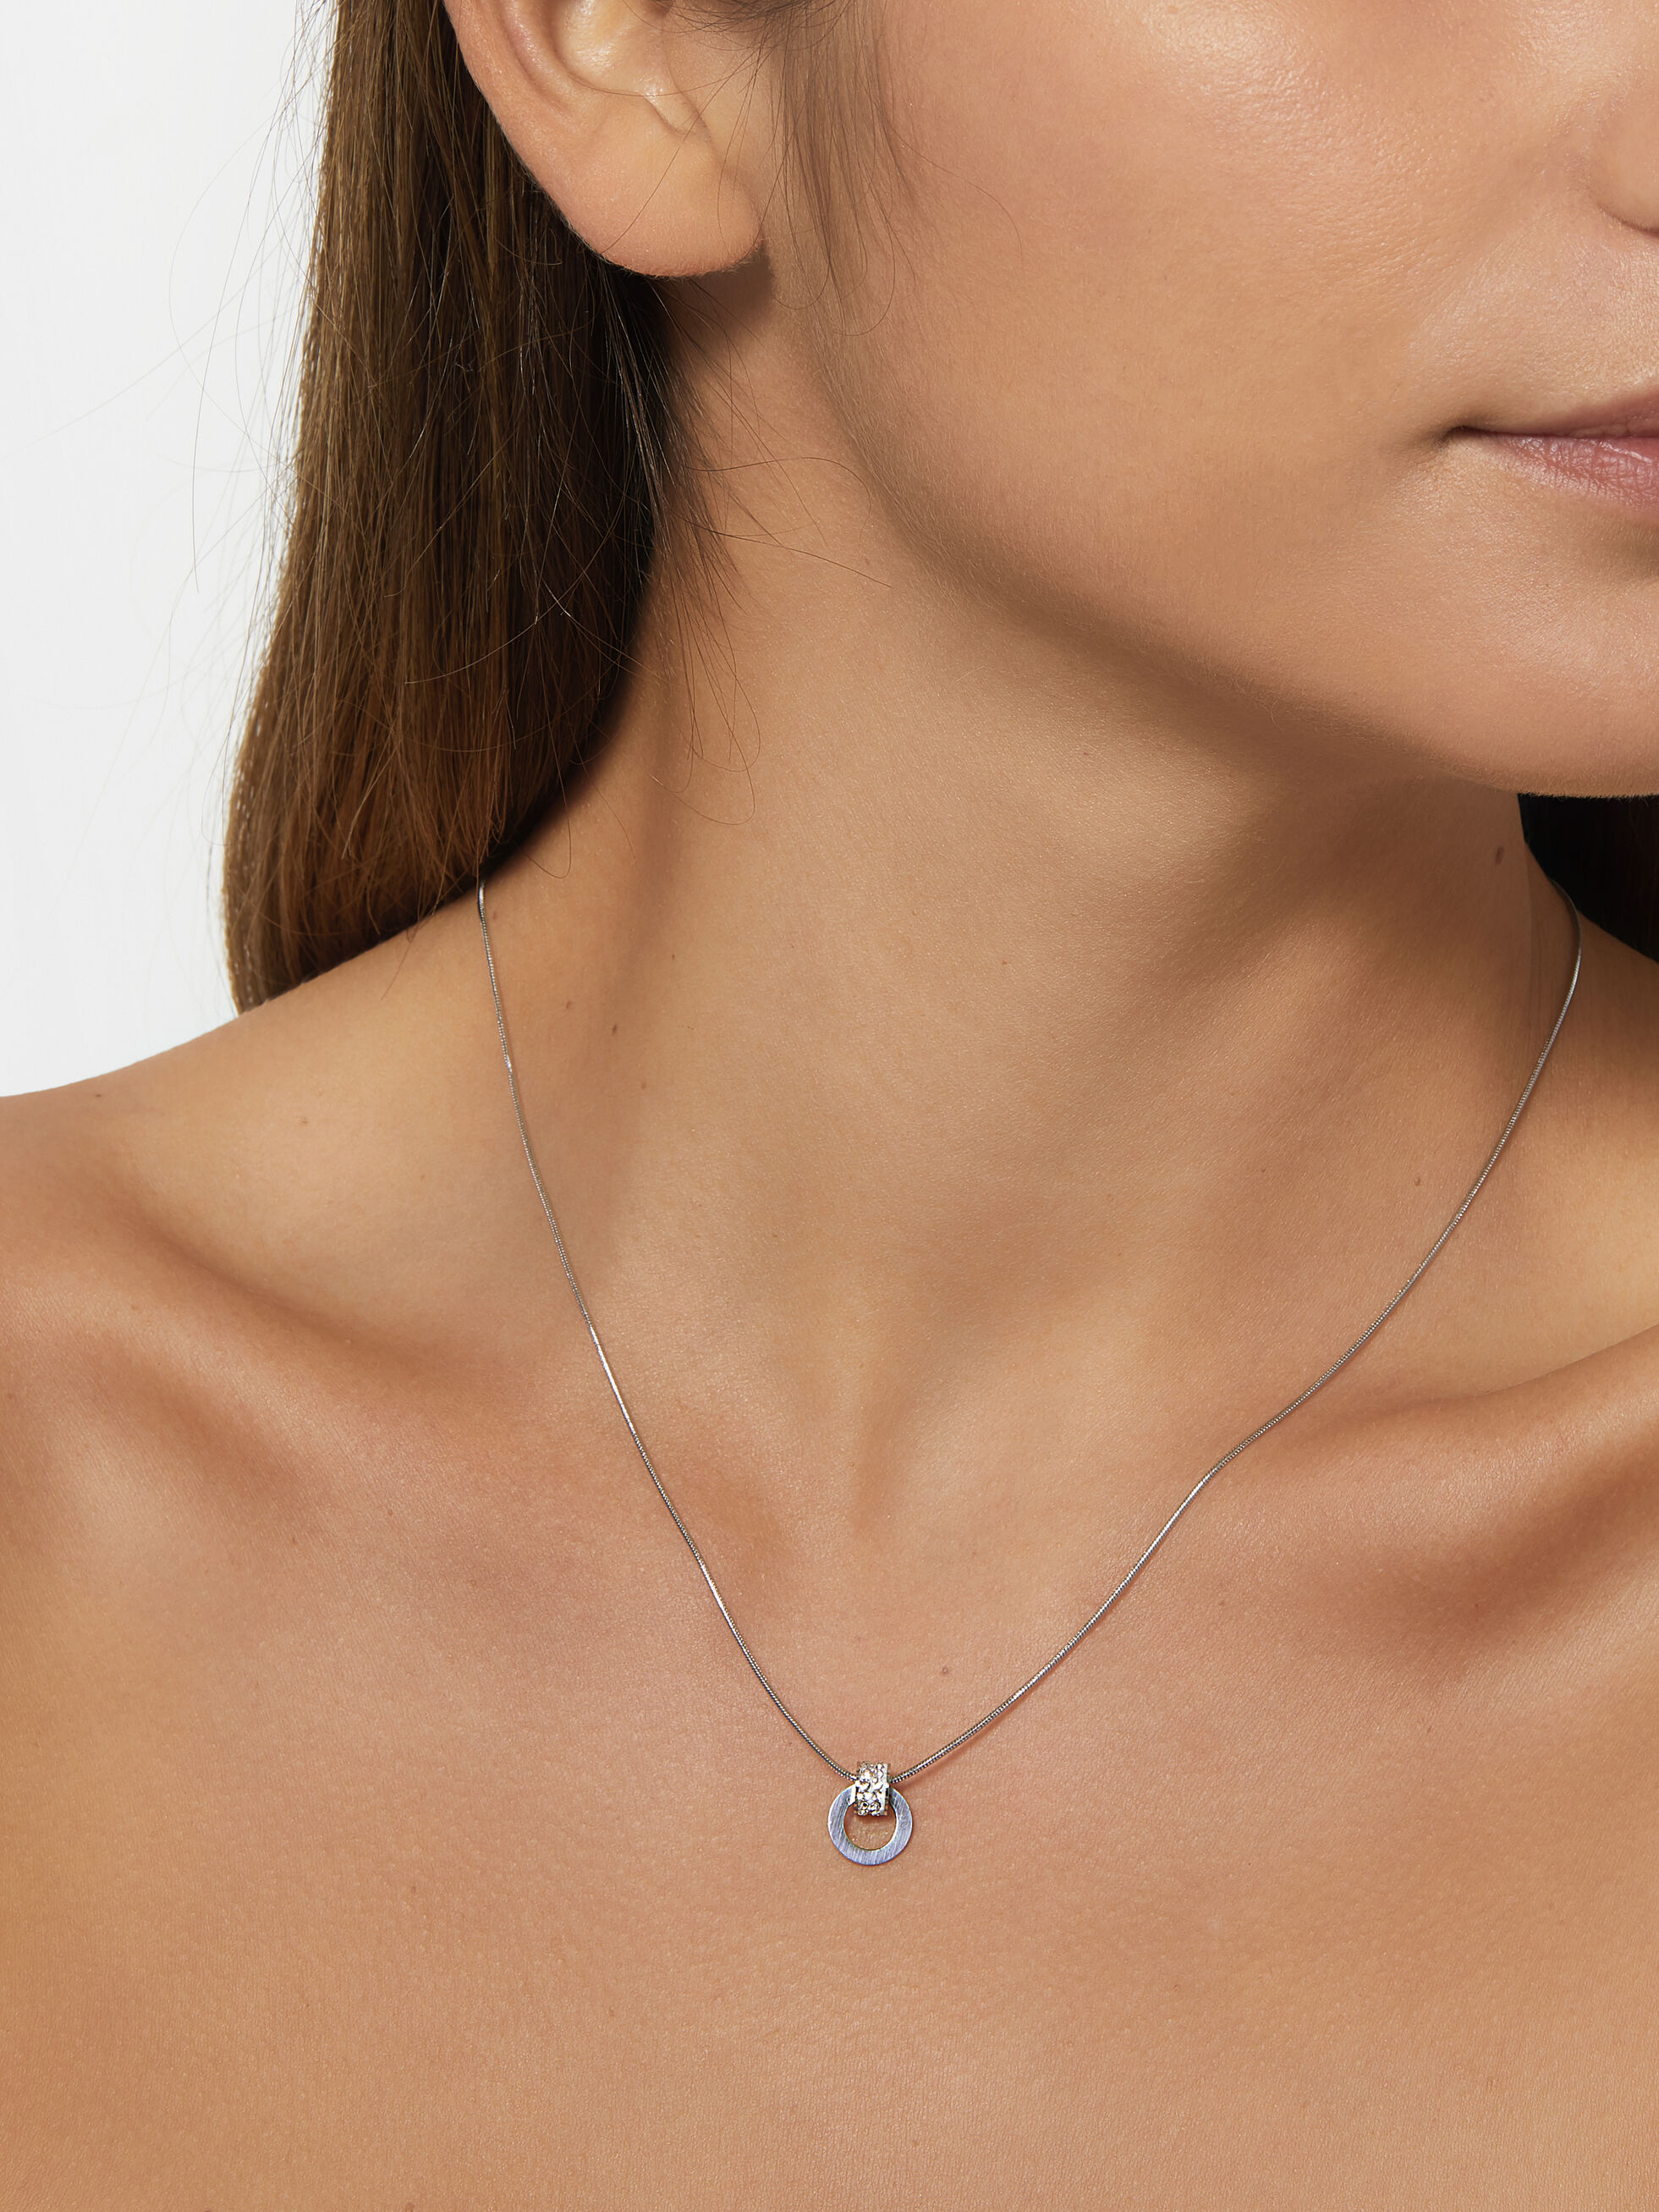 Stainless Steel Necklace, Silver, hi-res